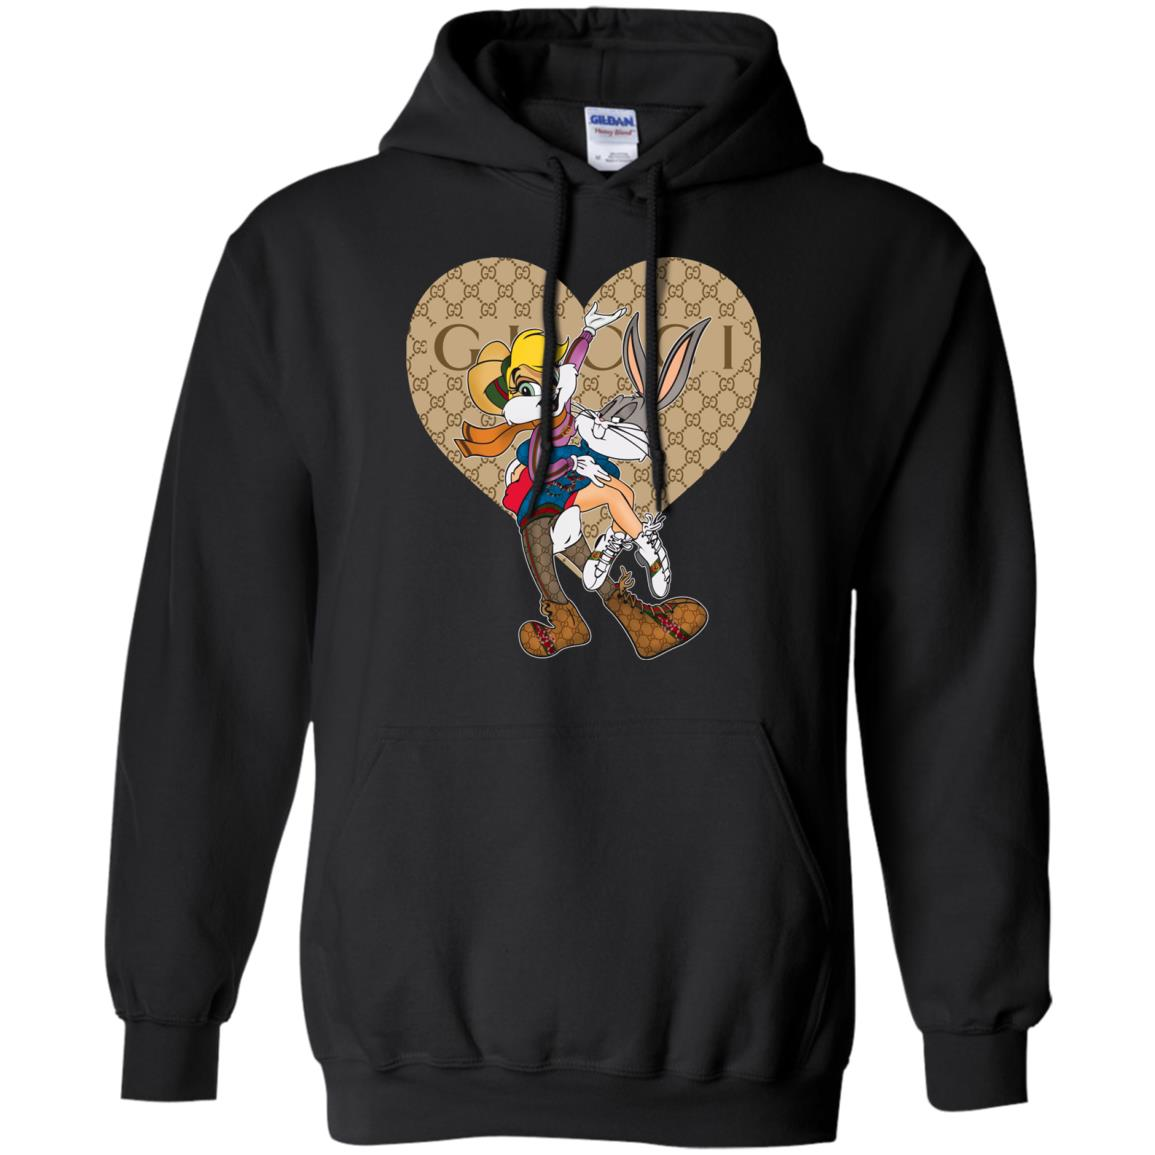 98400fbae69 Gucci Bugs Bunny And Lola Bunny Heart Hoodie - Shop Gucci x Disney